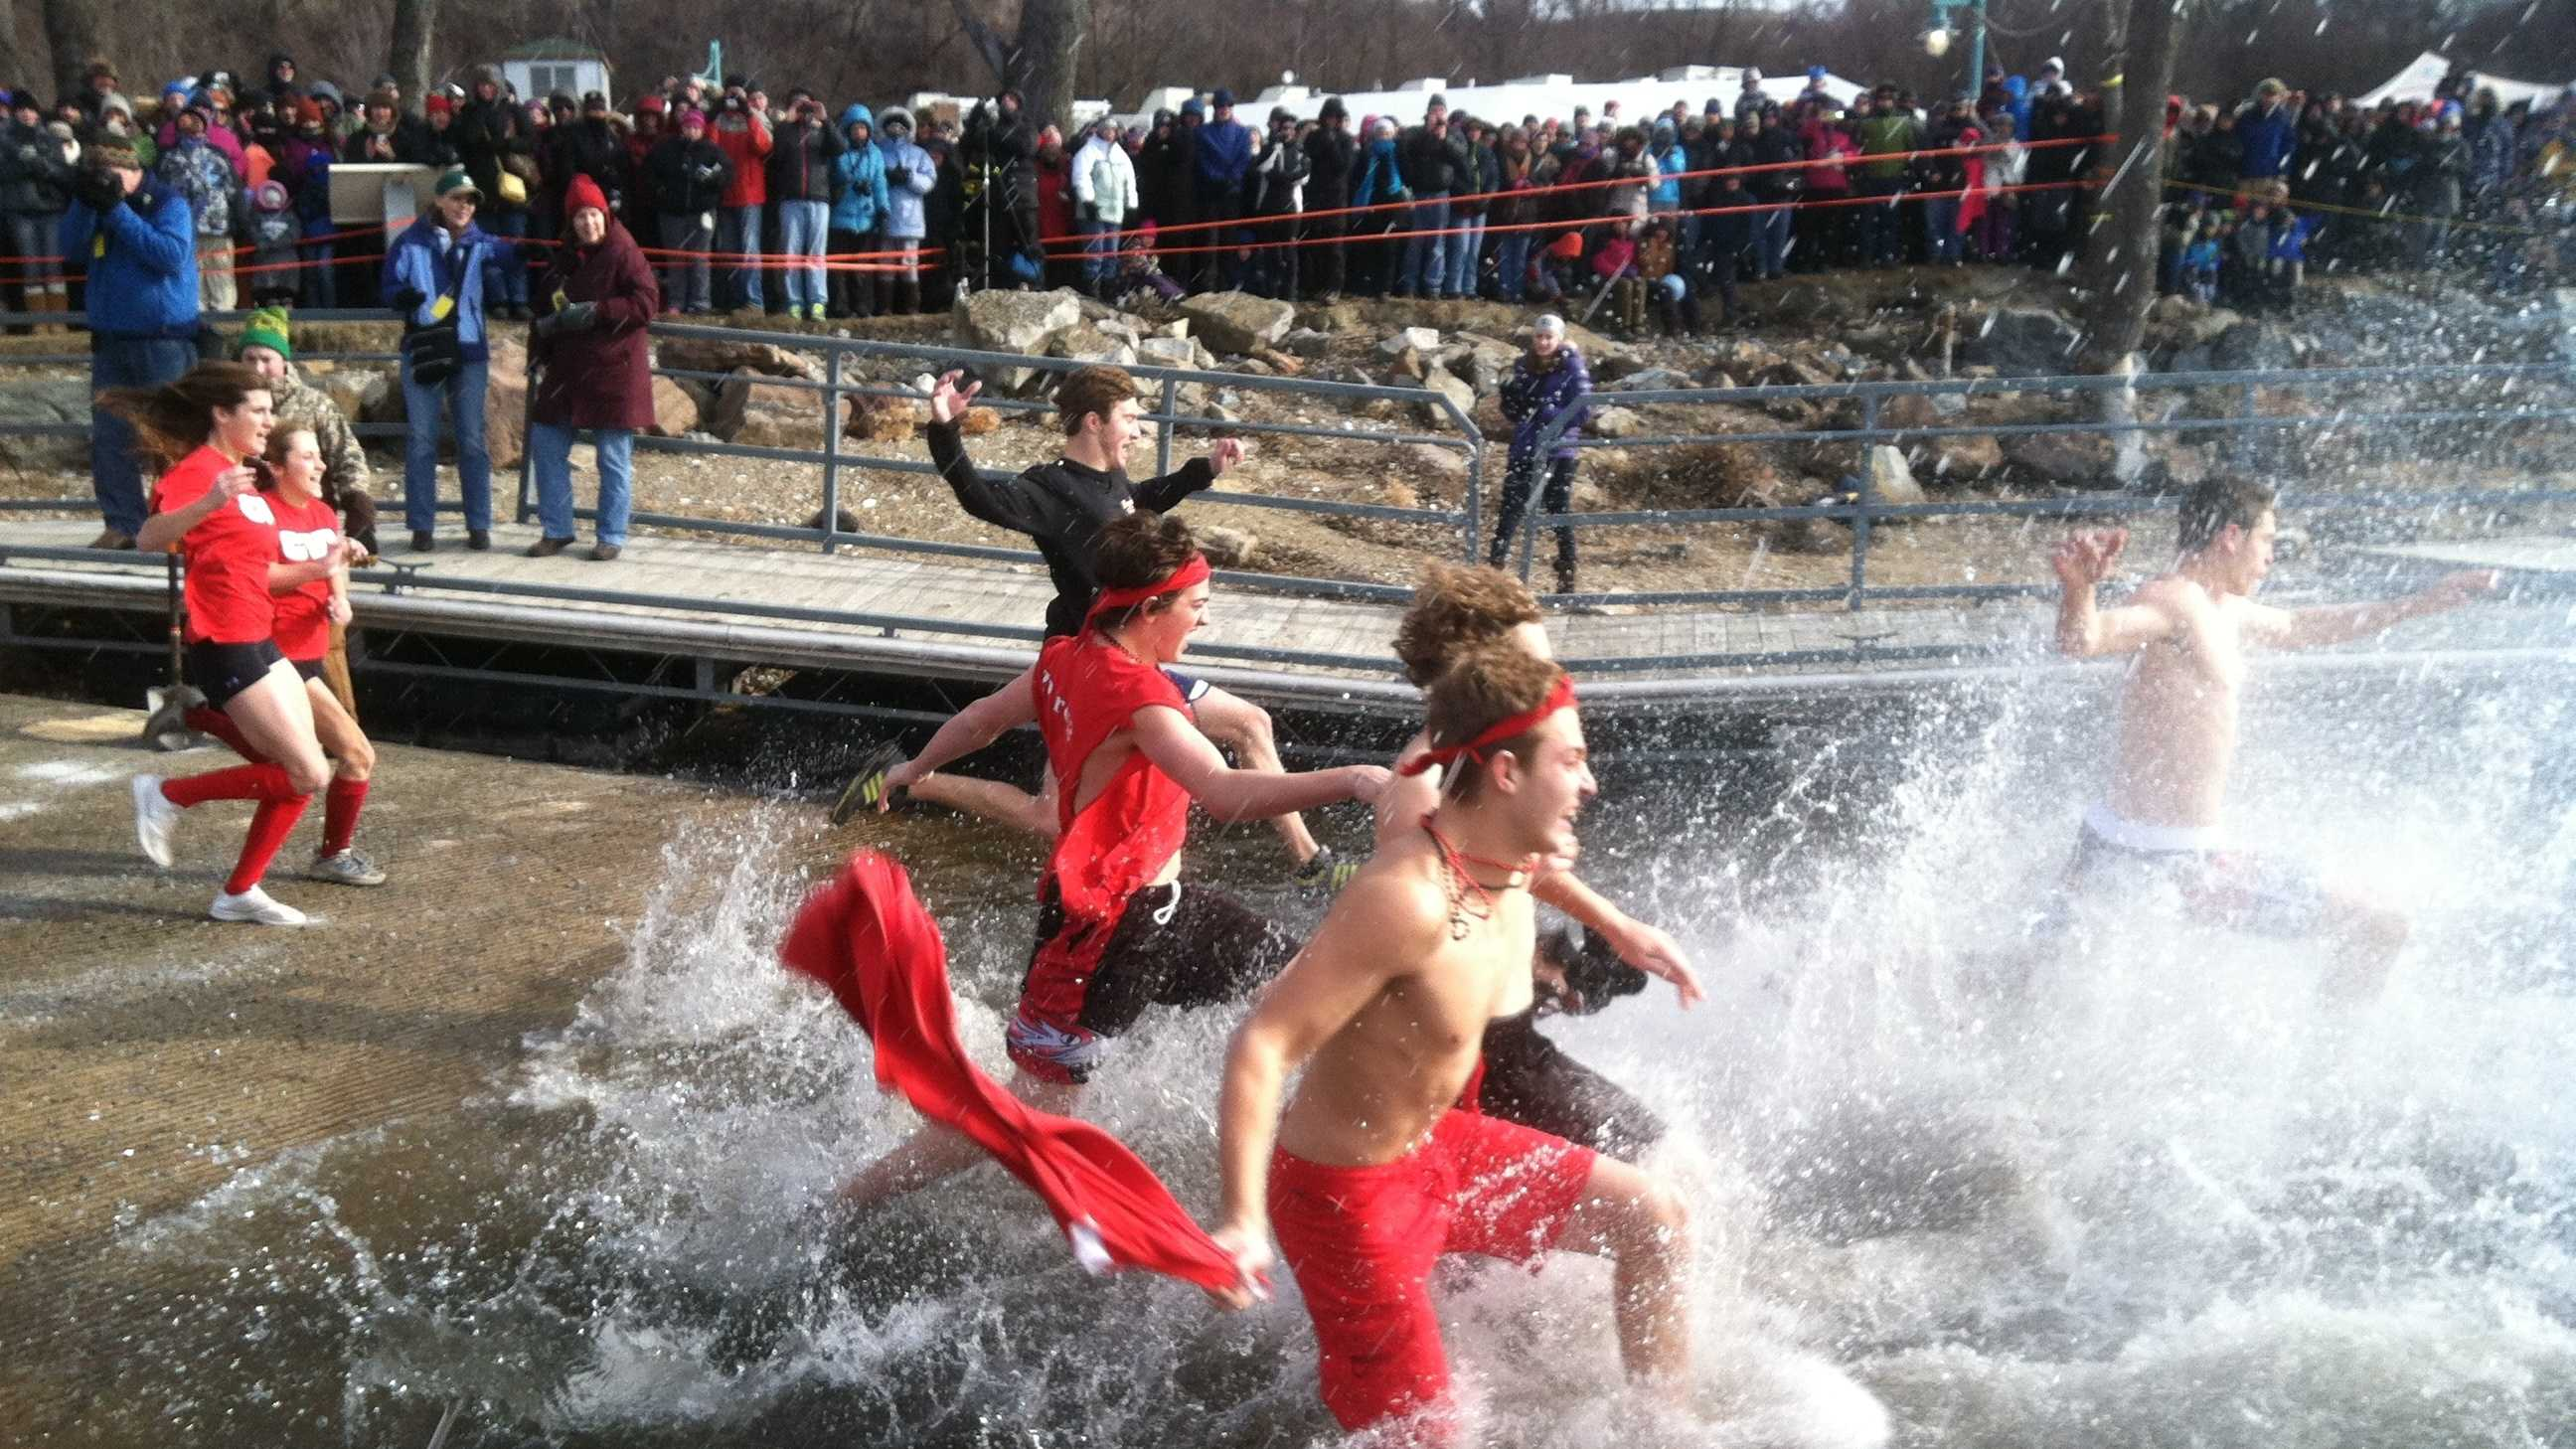 Swimmers dive into chilly Lake Champlain for the 2013 Penguin Plunge